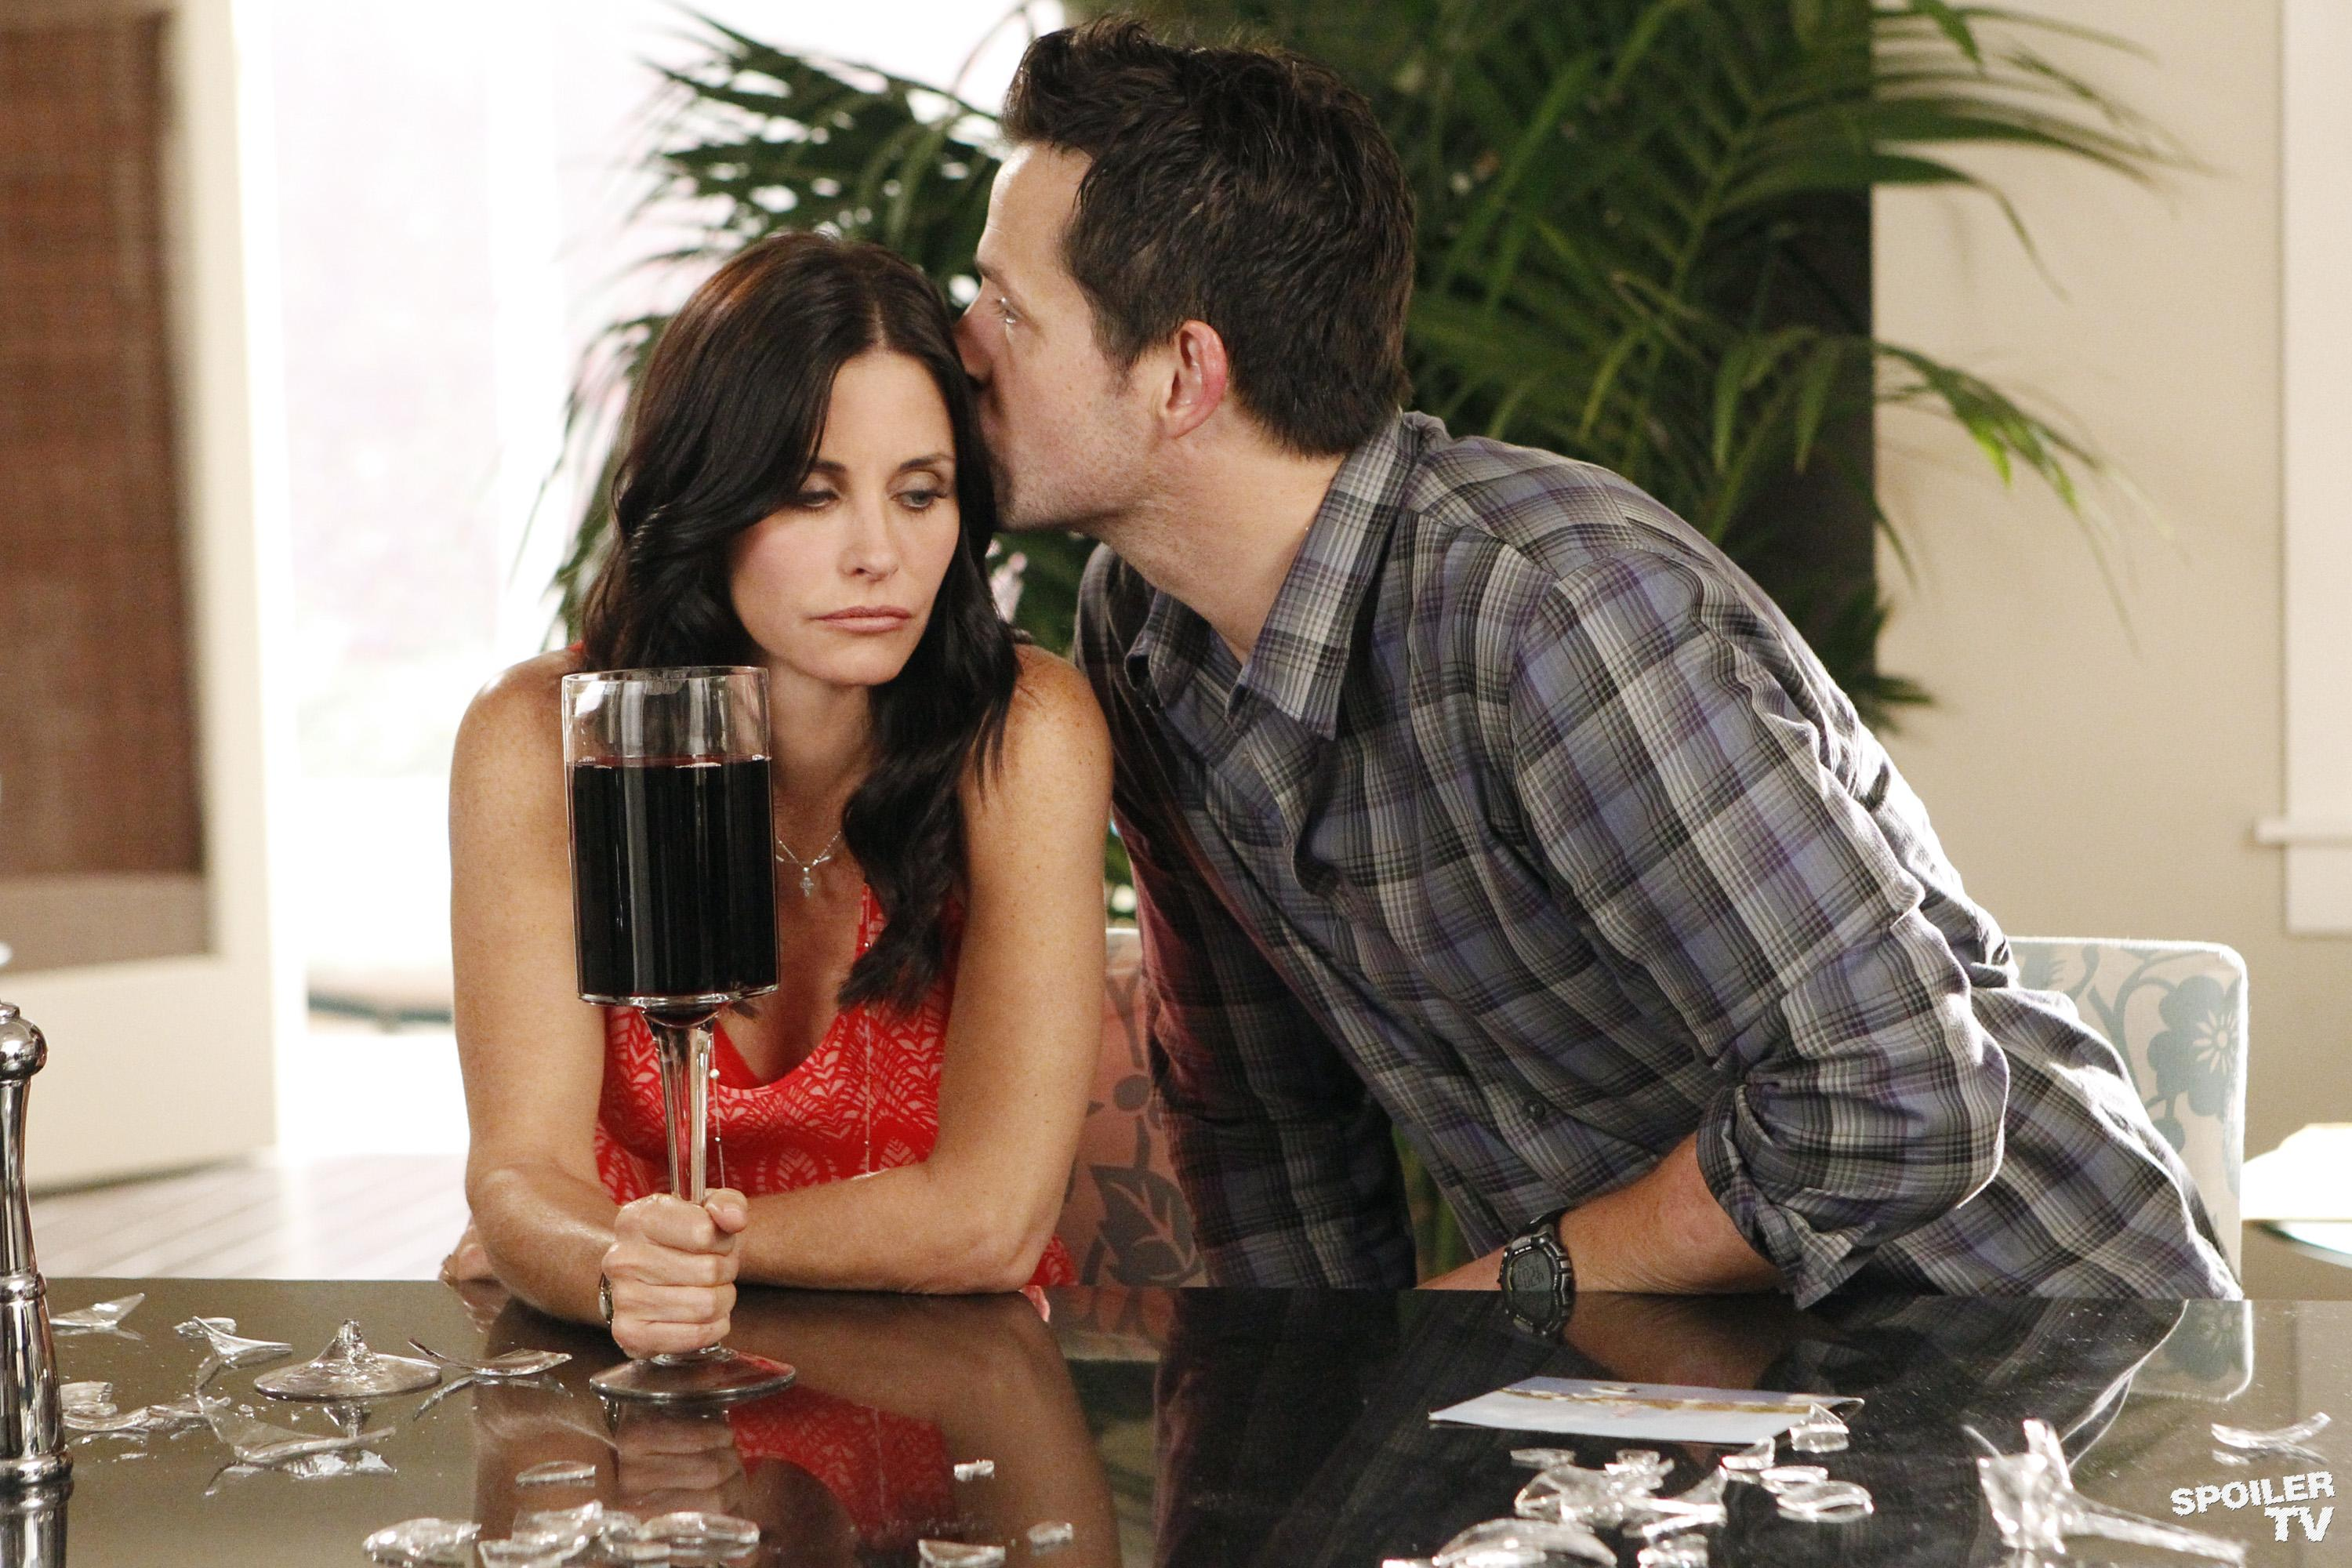 cougartown_y3_052_014_full